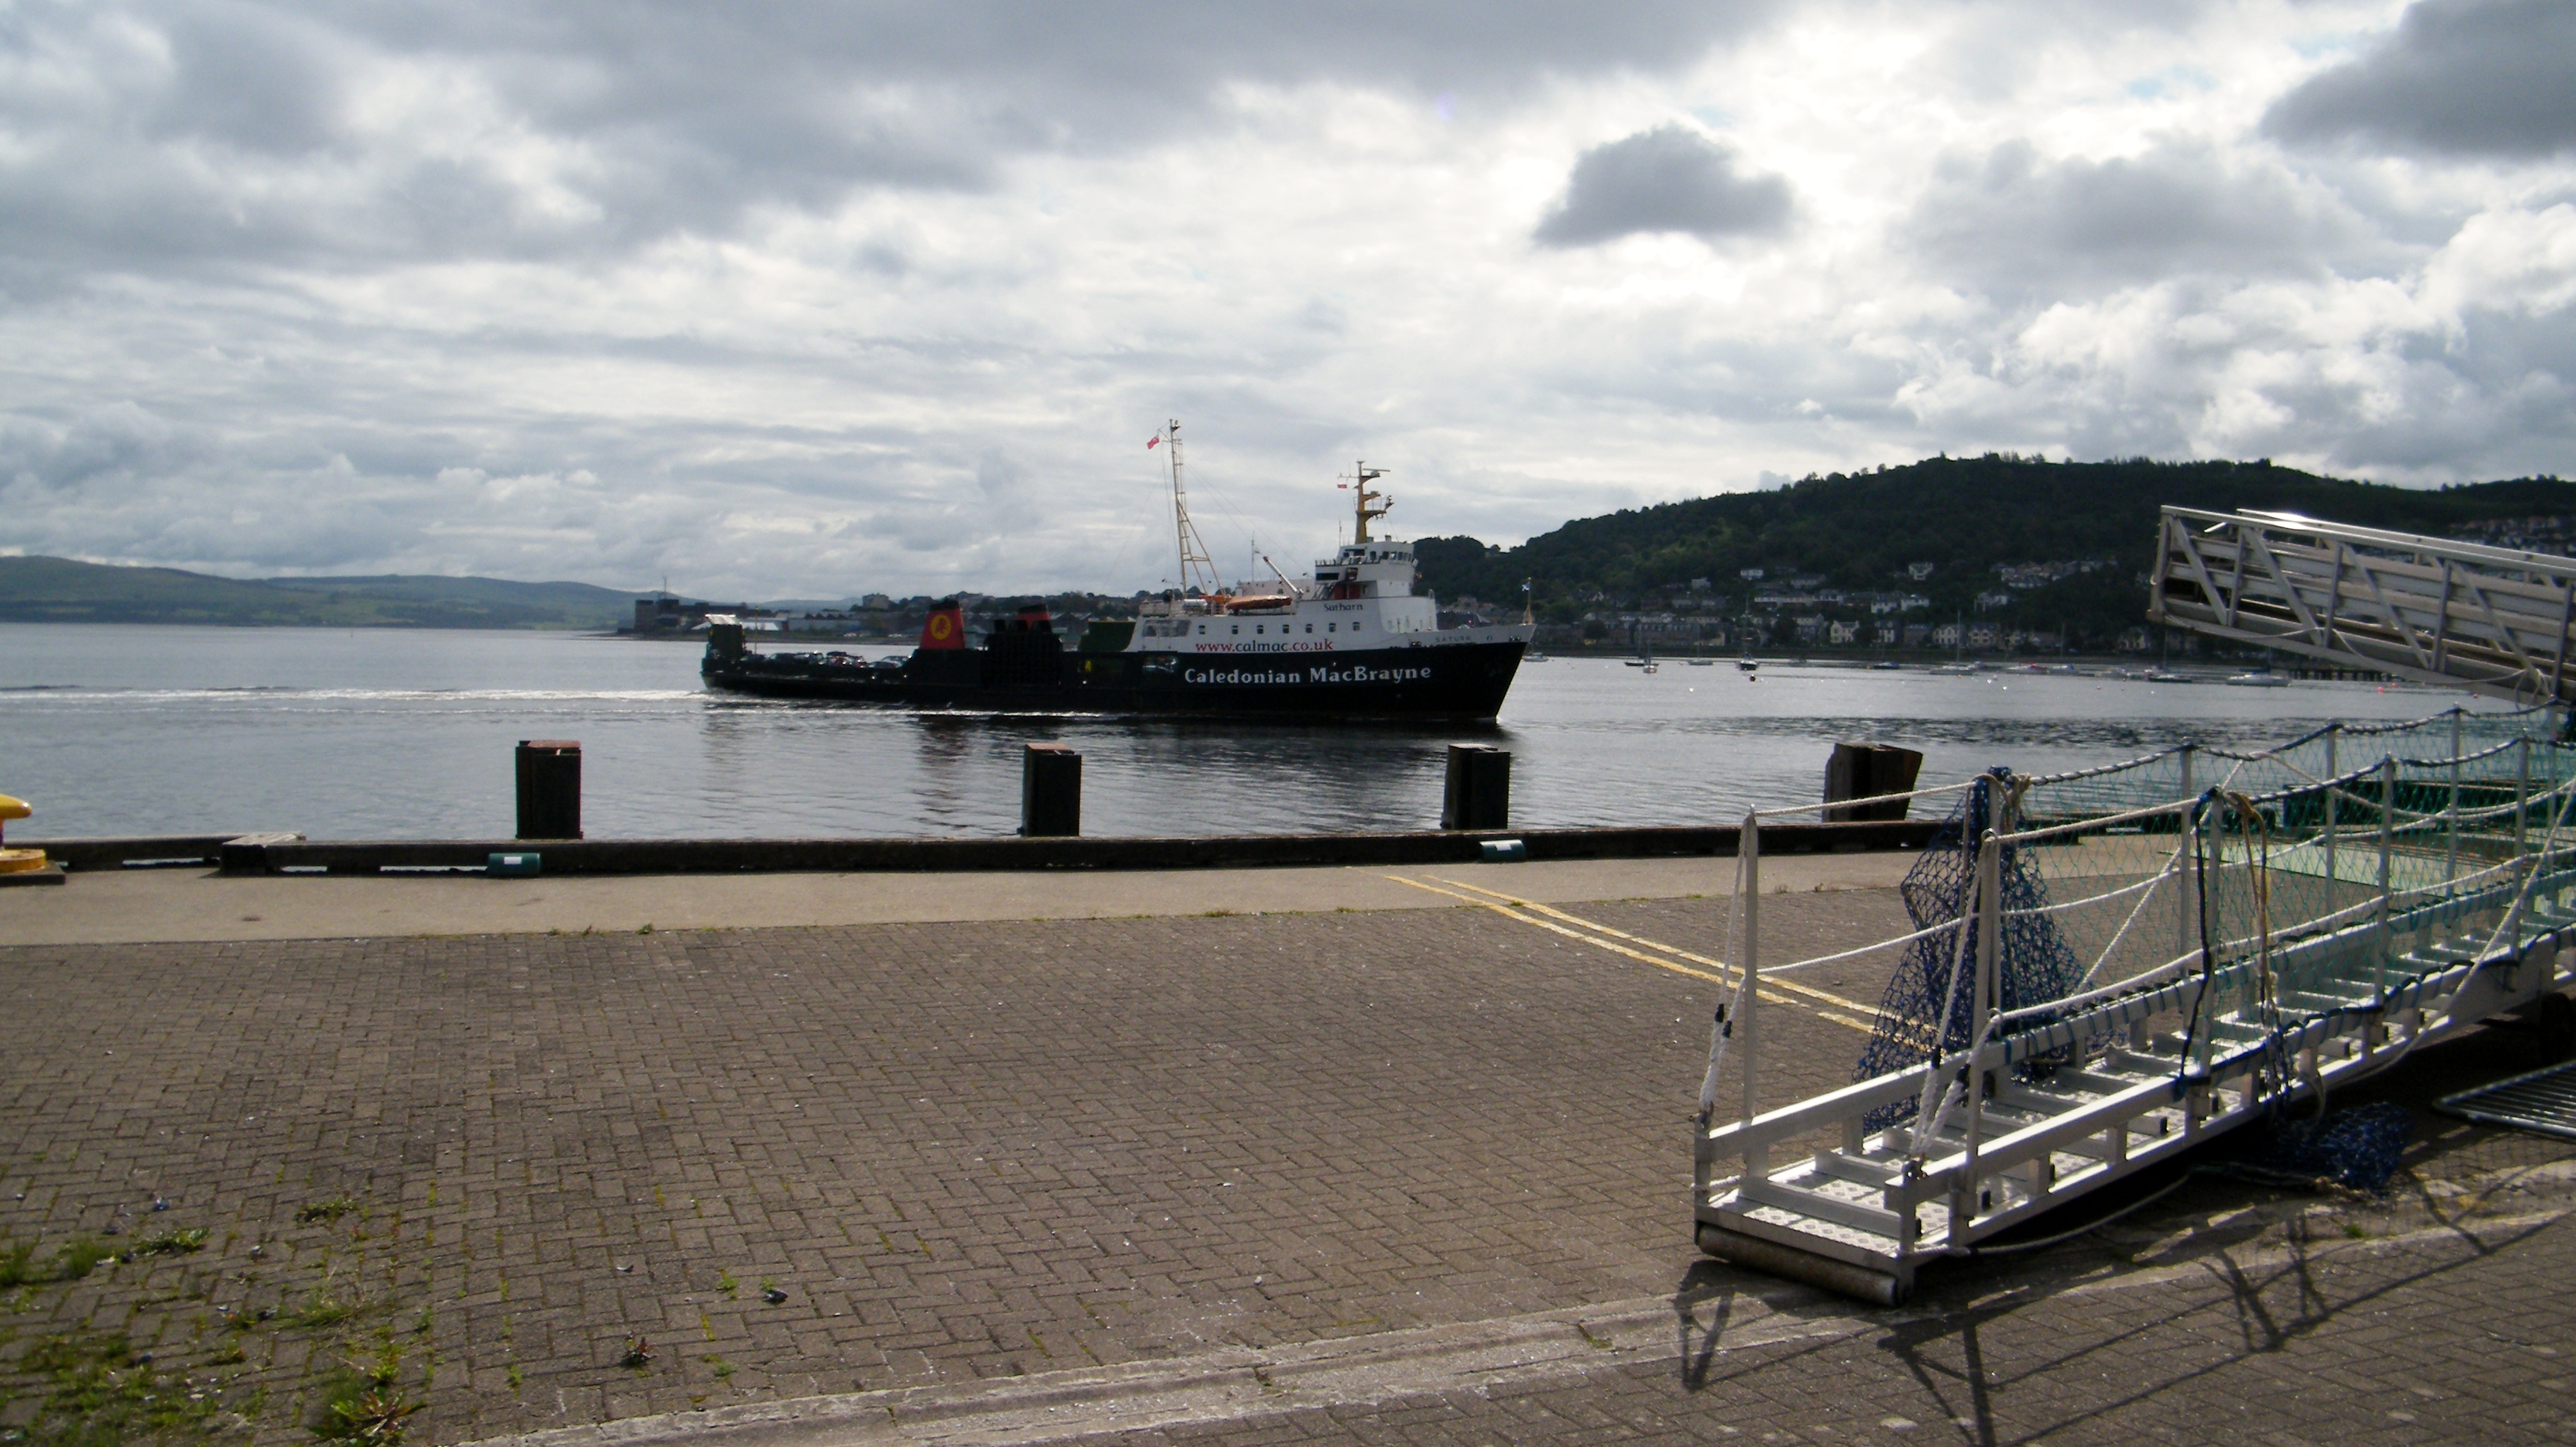 Saturn arriving at Gourock (Ships of CalMac)